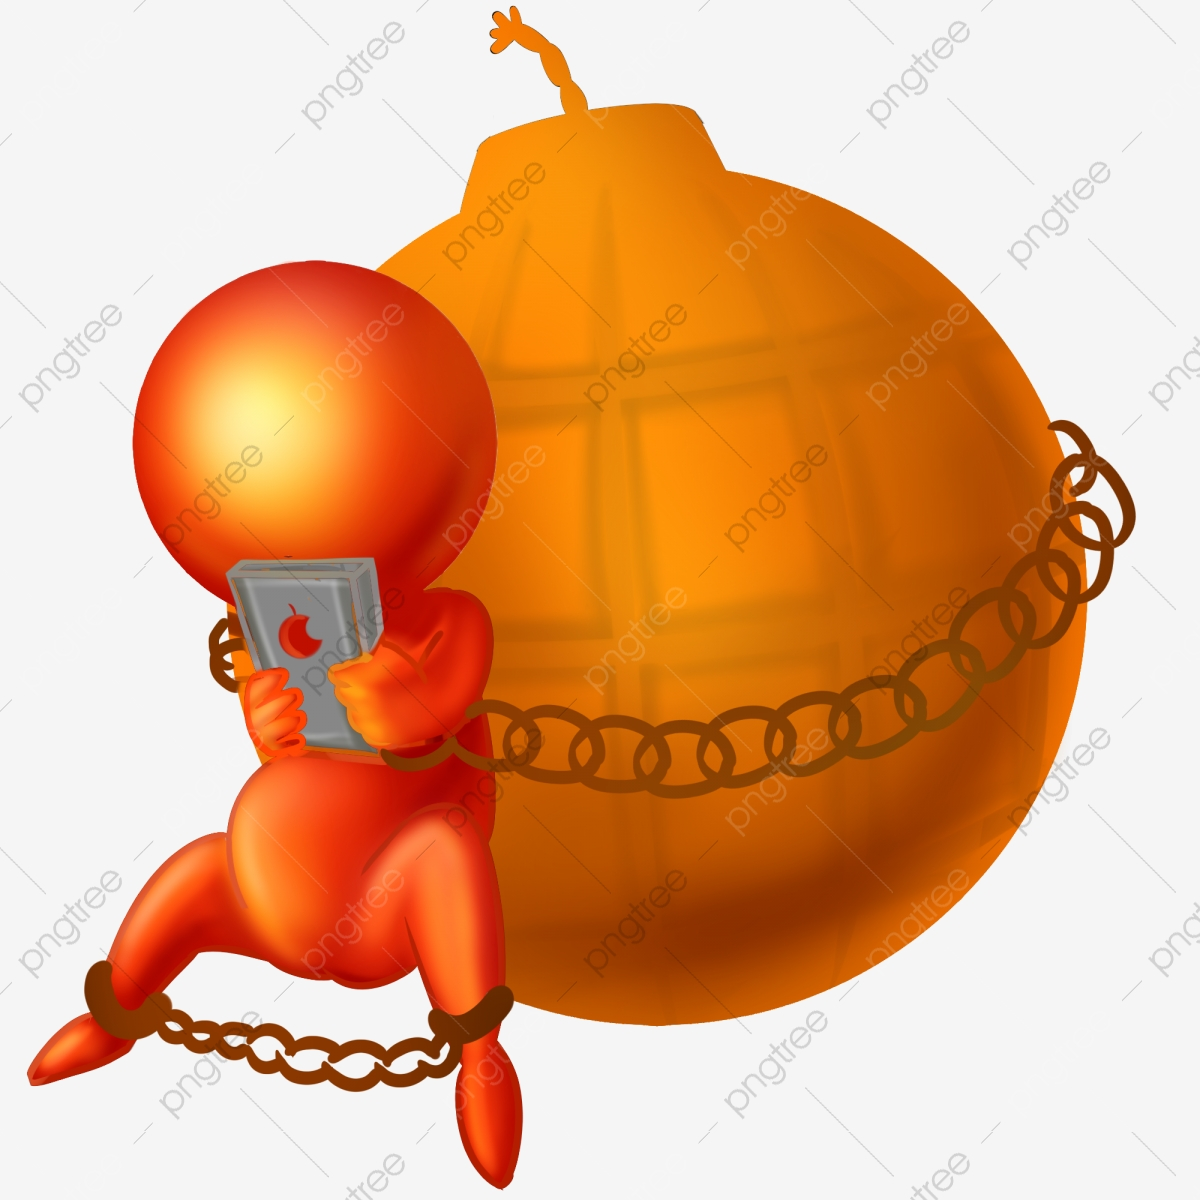 Christmas Chain Clipart.Stickman Illustration Tied With Iron Chain Orange Bomb Red